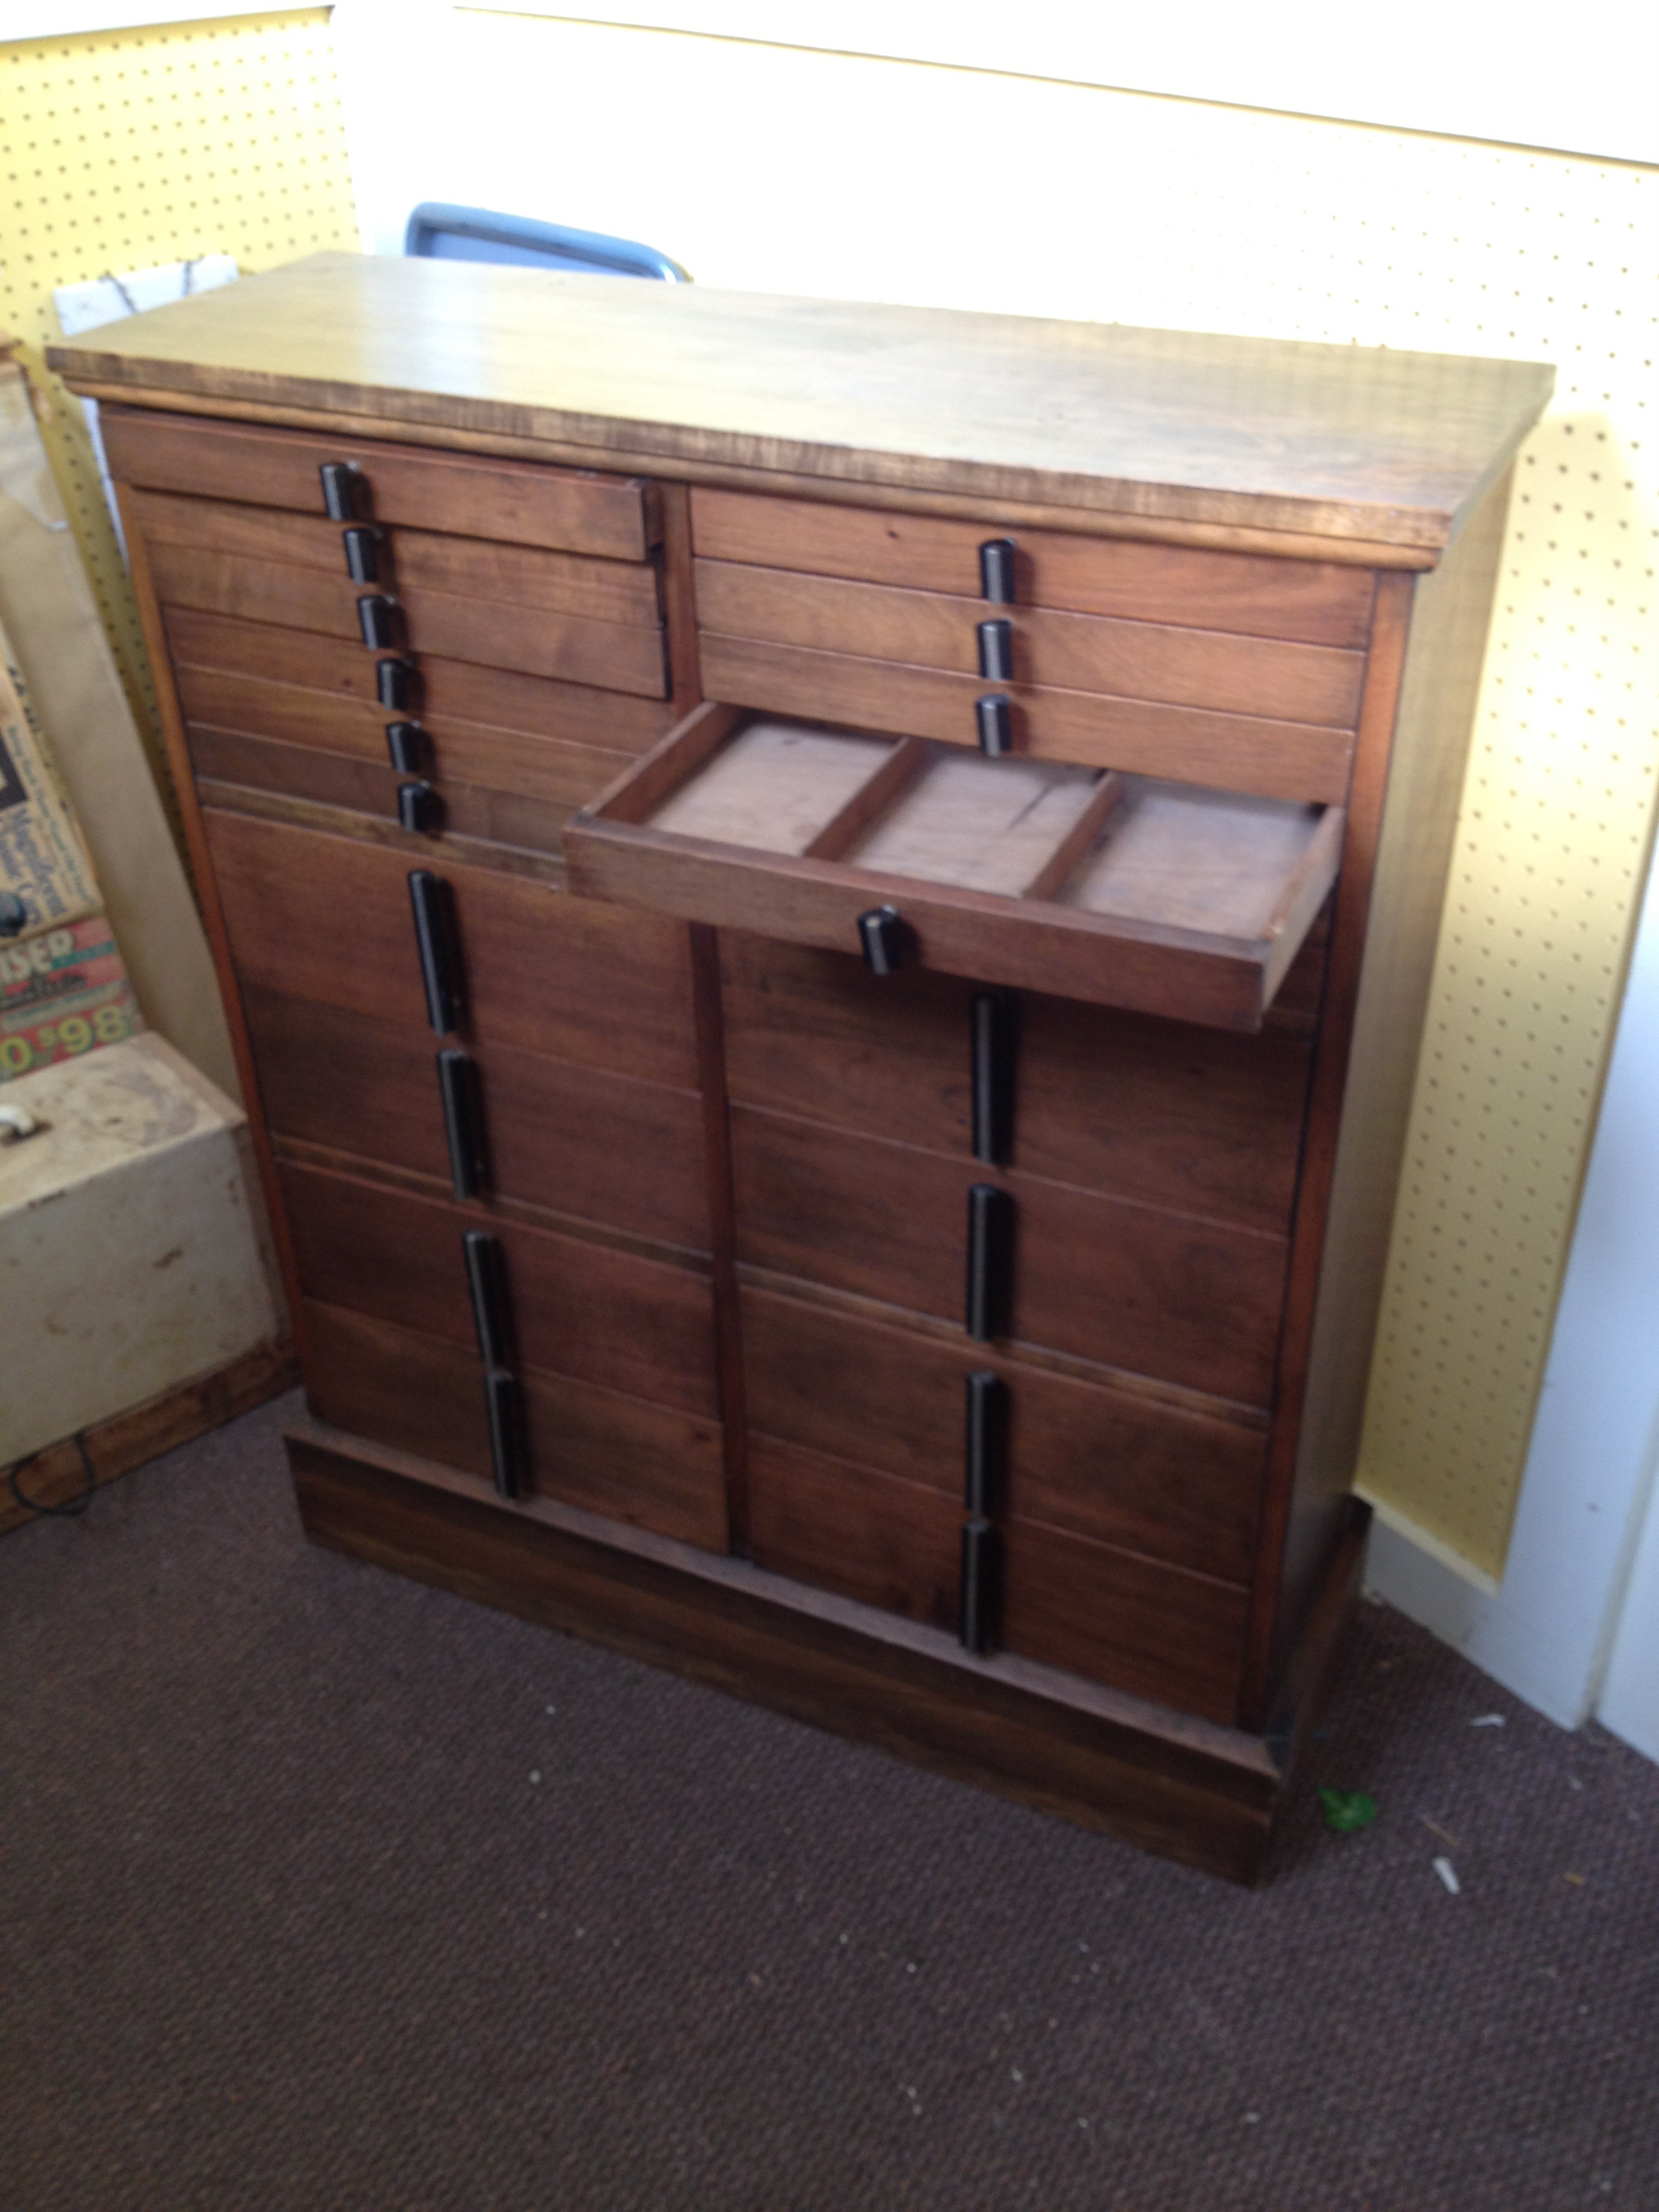 1920's-30's Dental Cabinet For Sale | Antiques.com | Classifieds